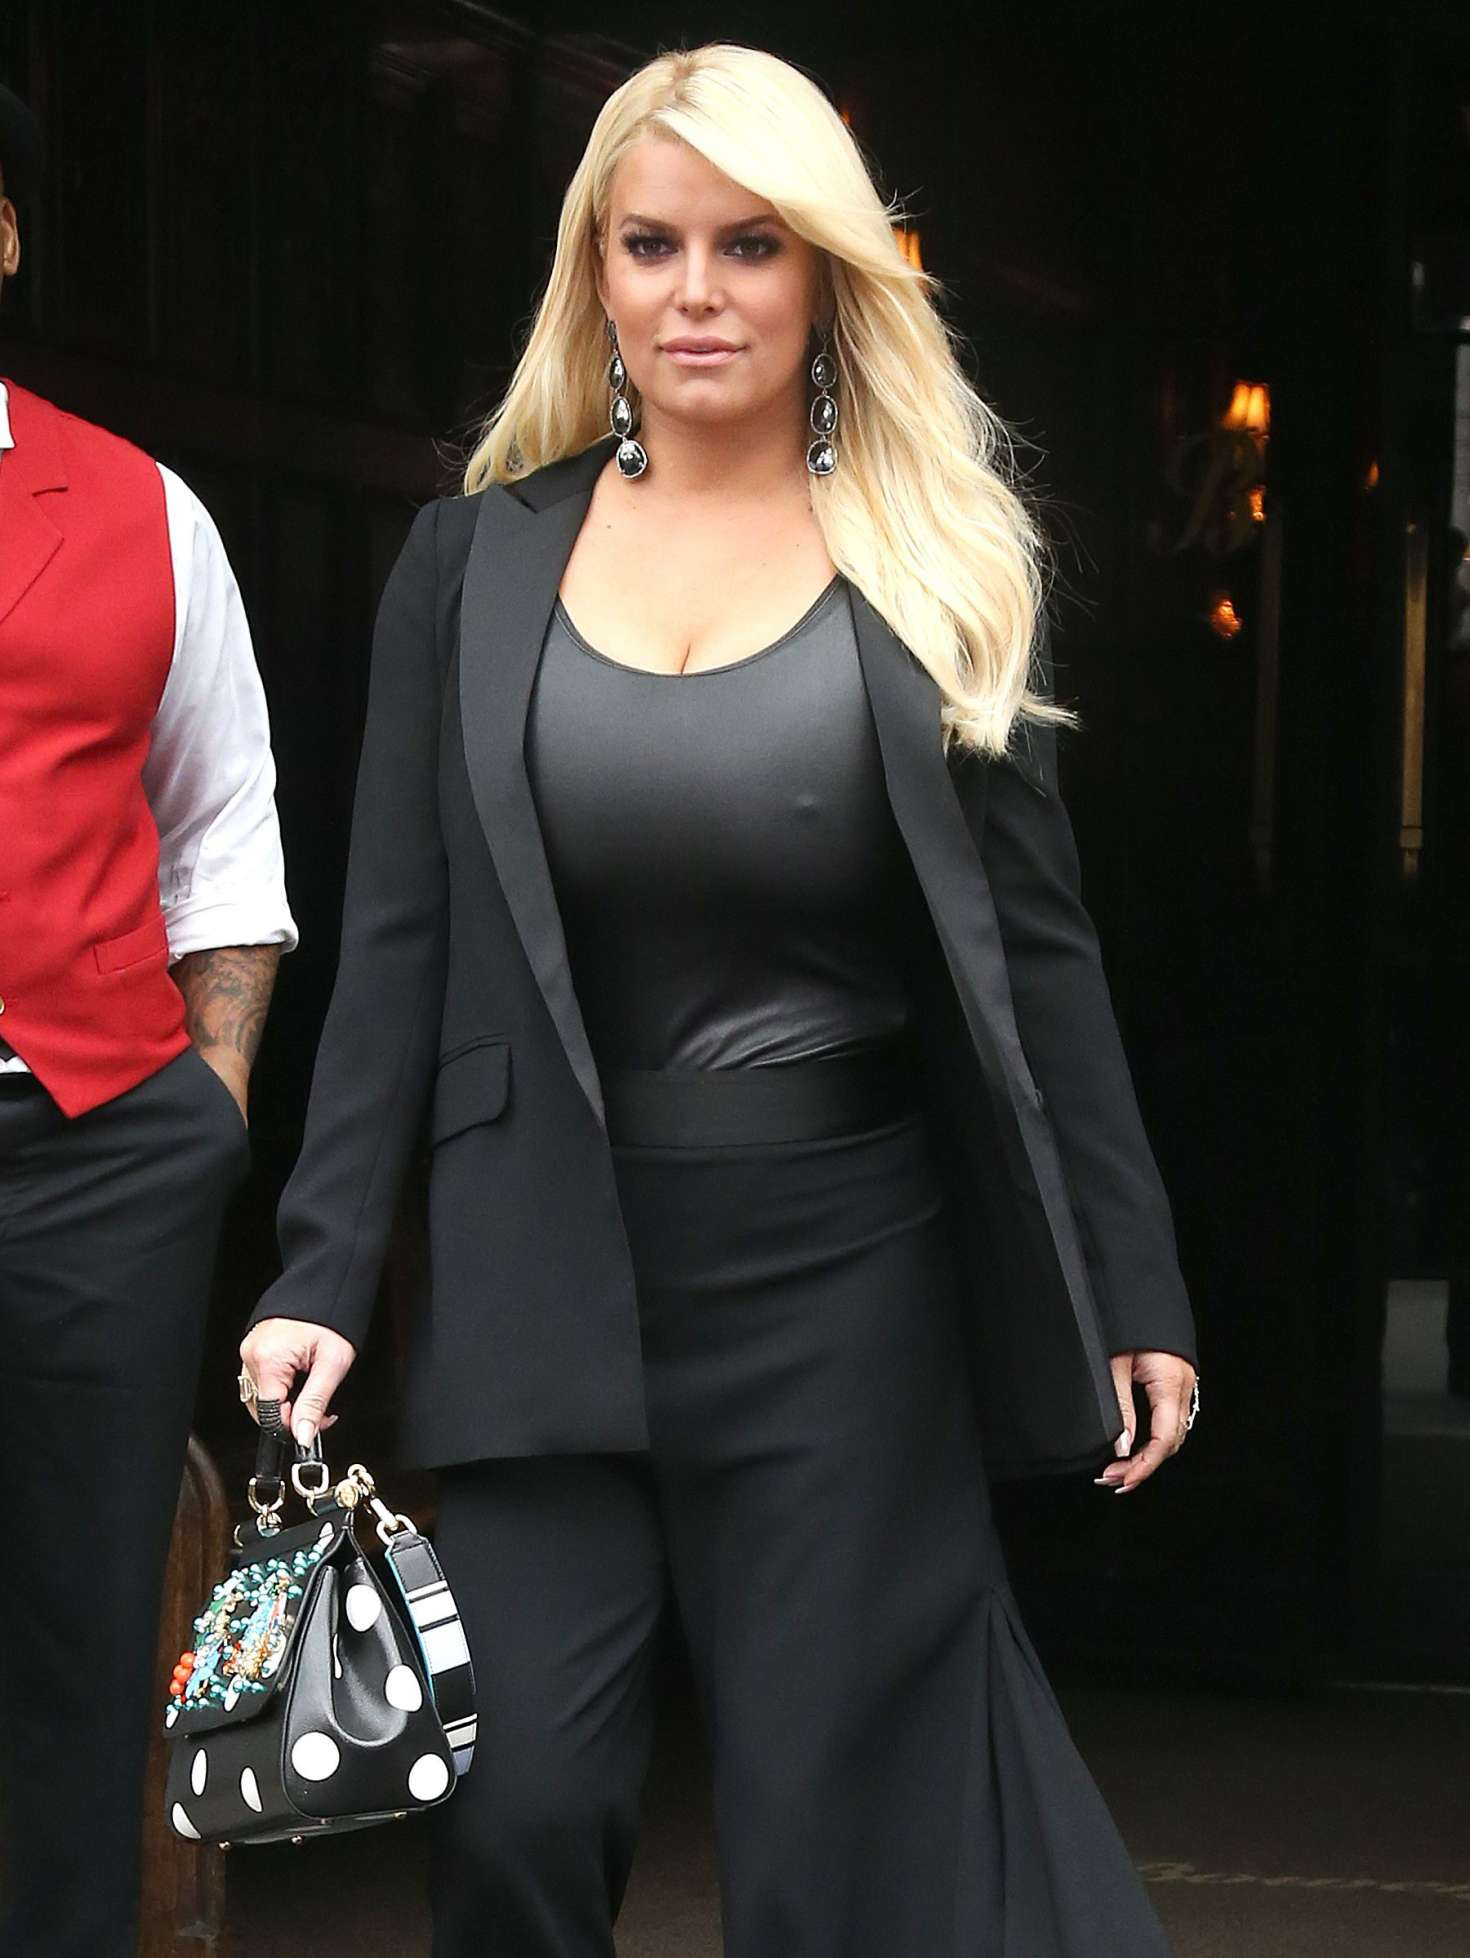 Jessica Simpson out and about in New York -18 - GotCeleb